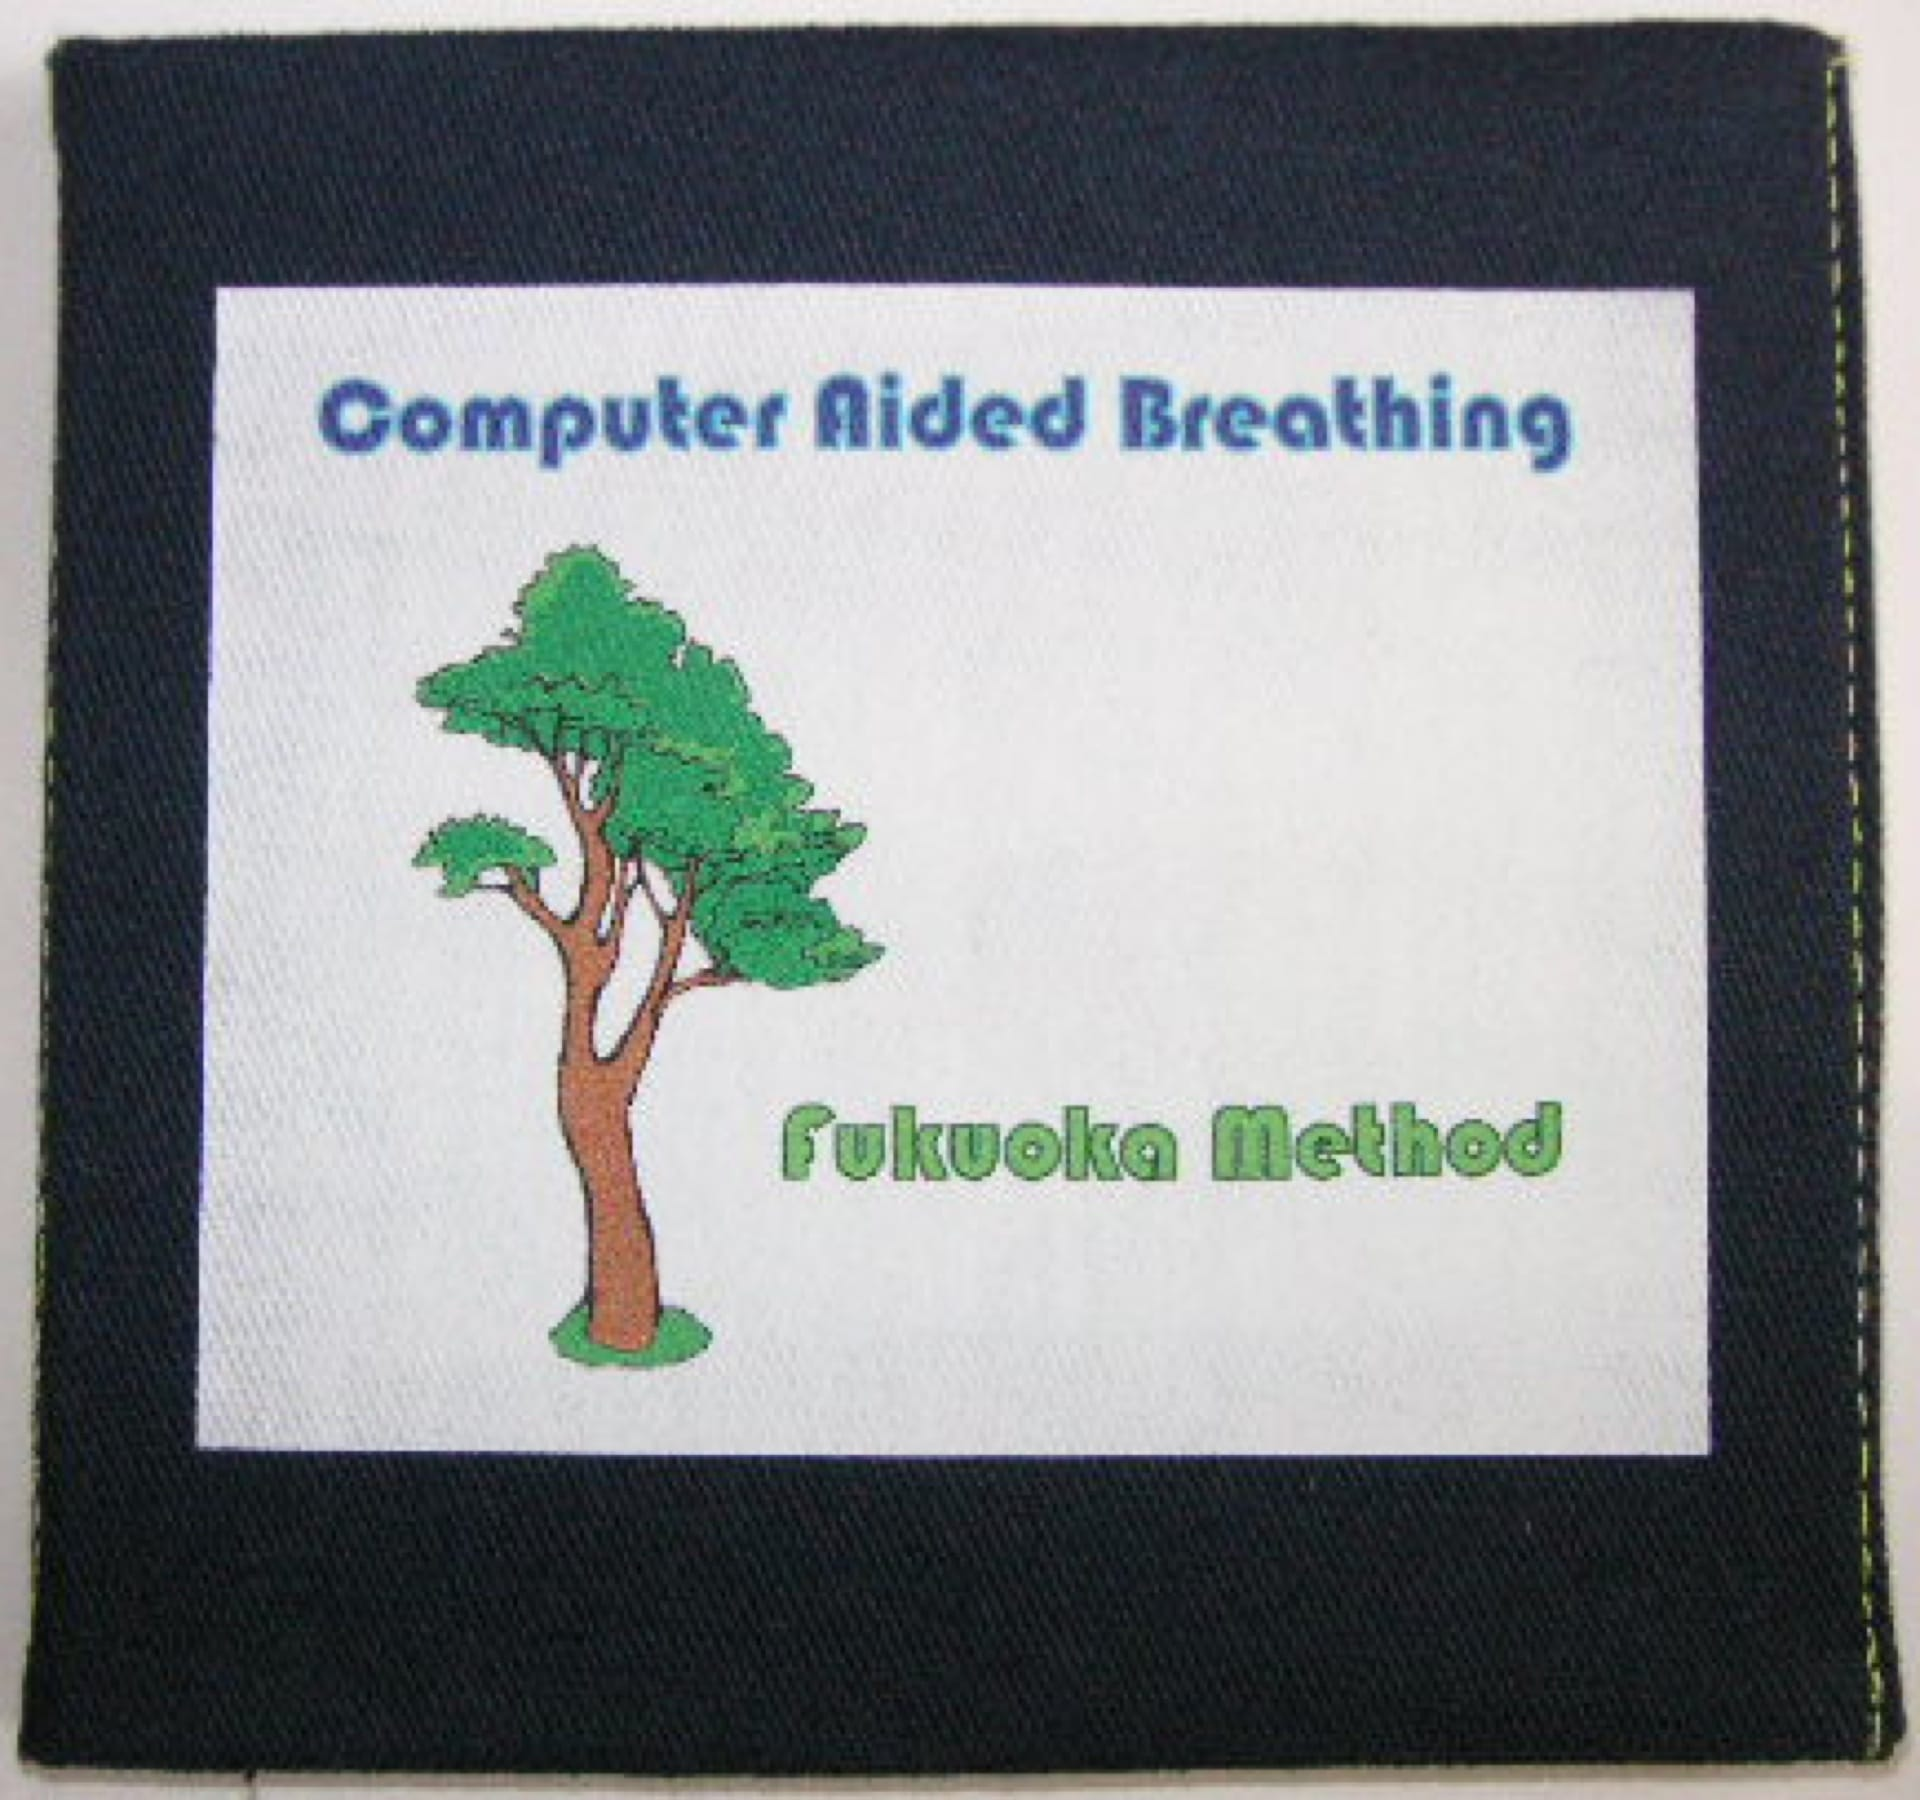 Fukuoka Method – Computer Aided Breathing – 1st print, front